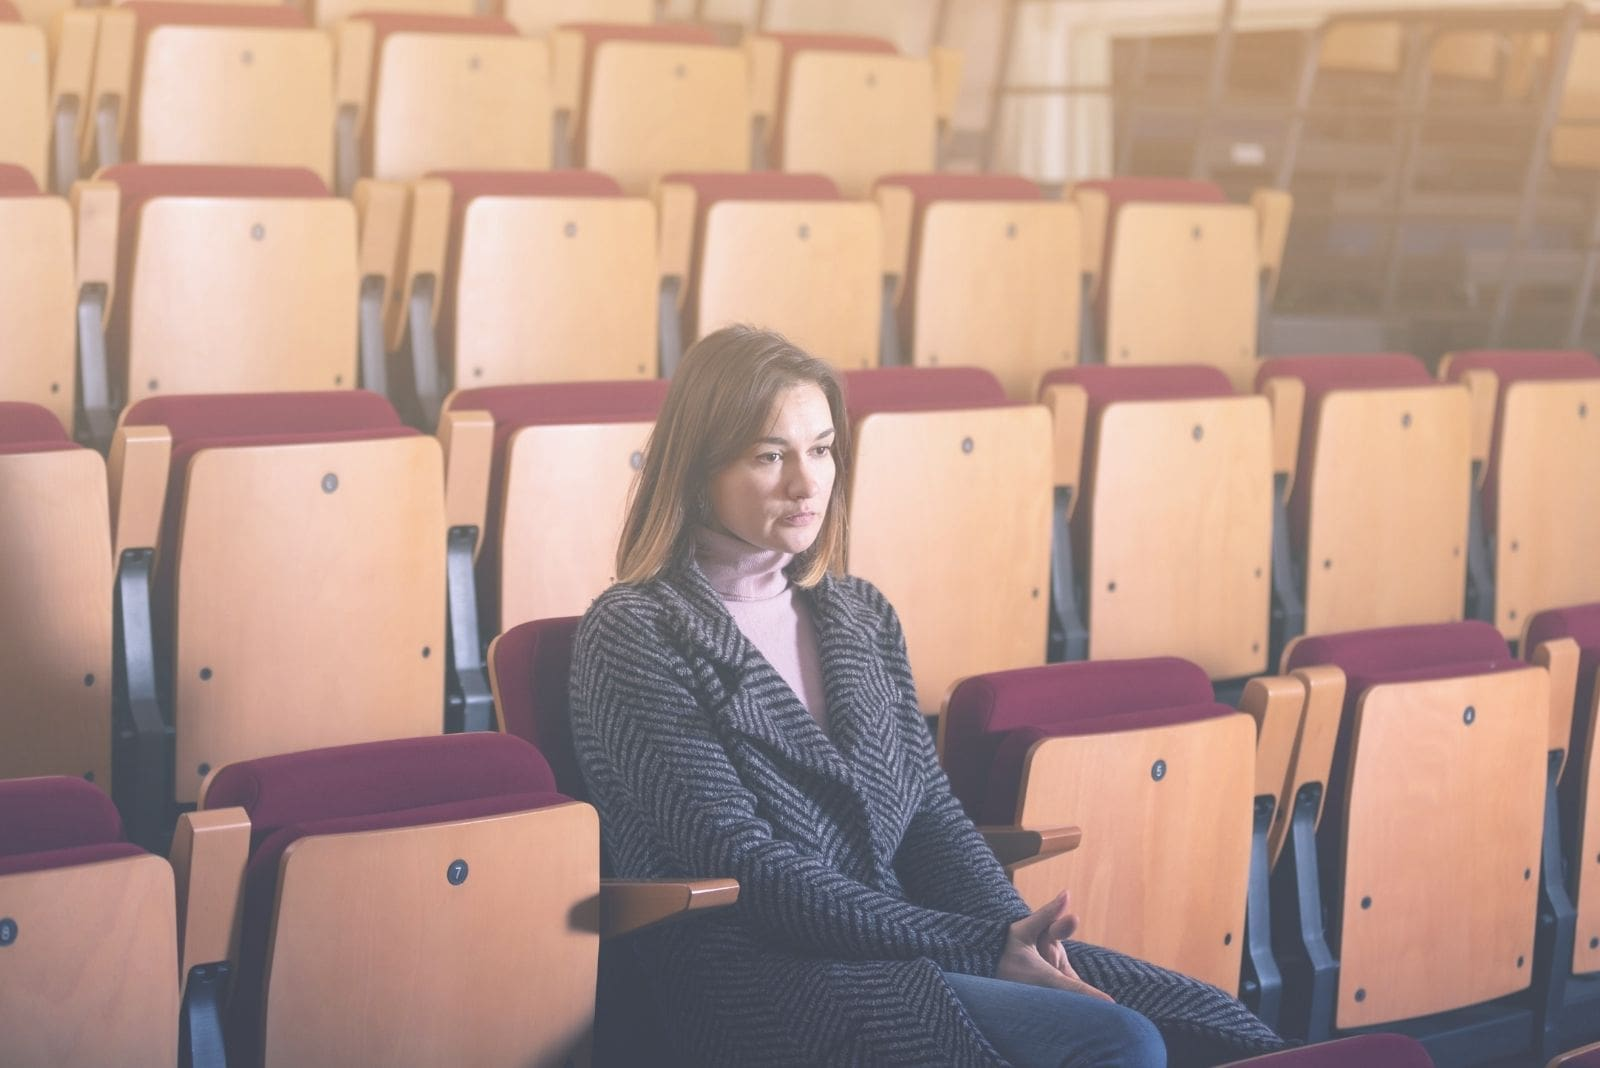 woman in the movie house alone waiting and pensive with empty seats